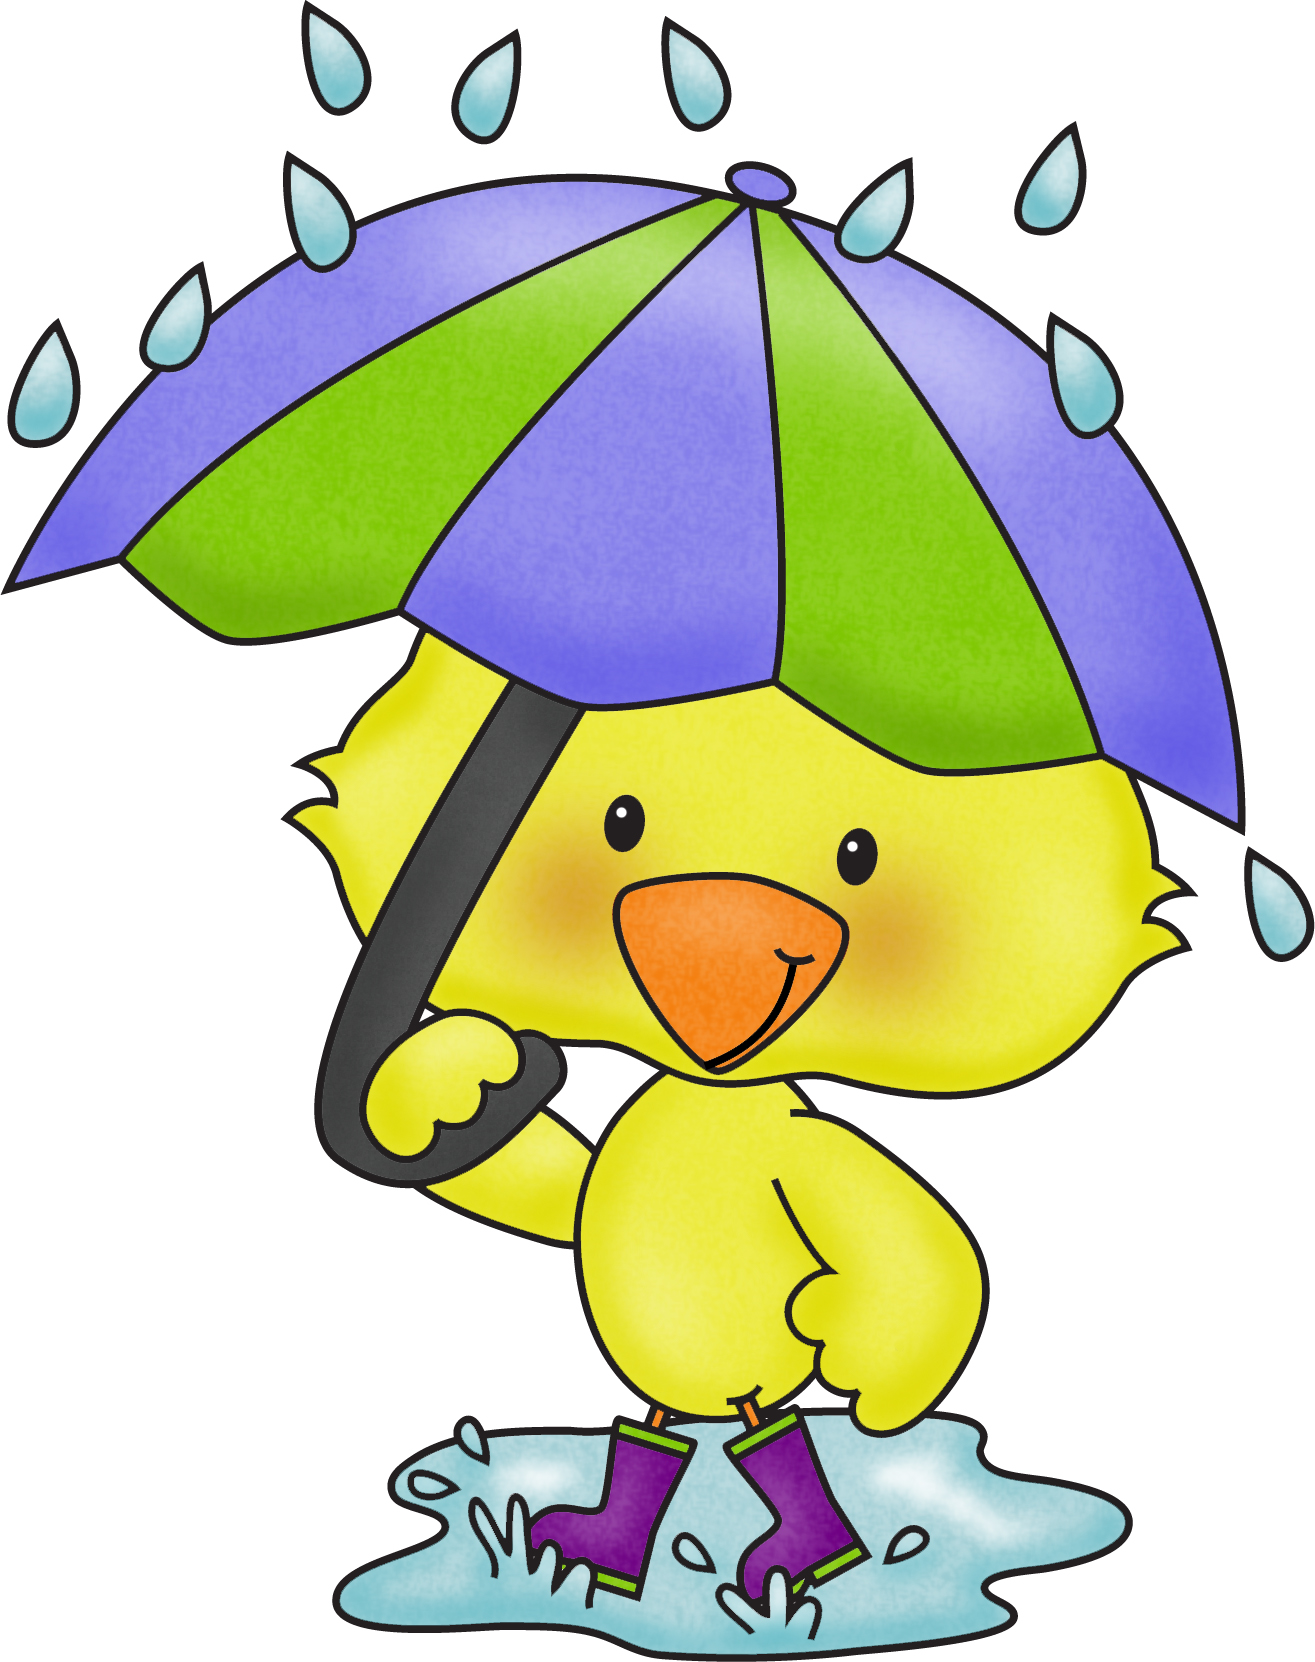 Clip Art. April Showers ... April_AprilS-Clip Art. April Showers ... April_AprilShowers.jpg-14